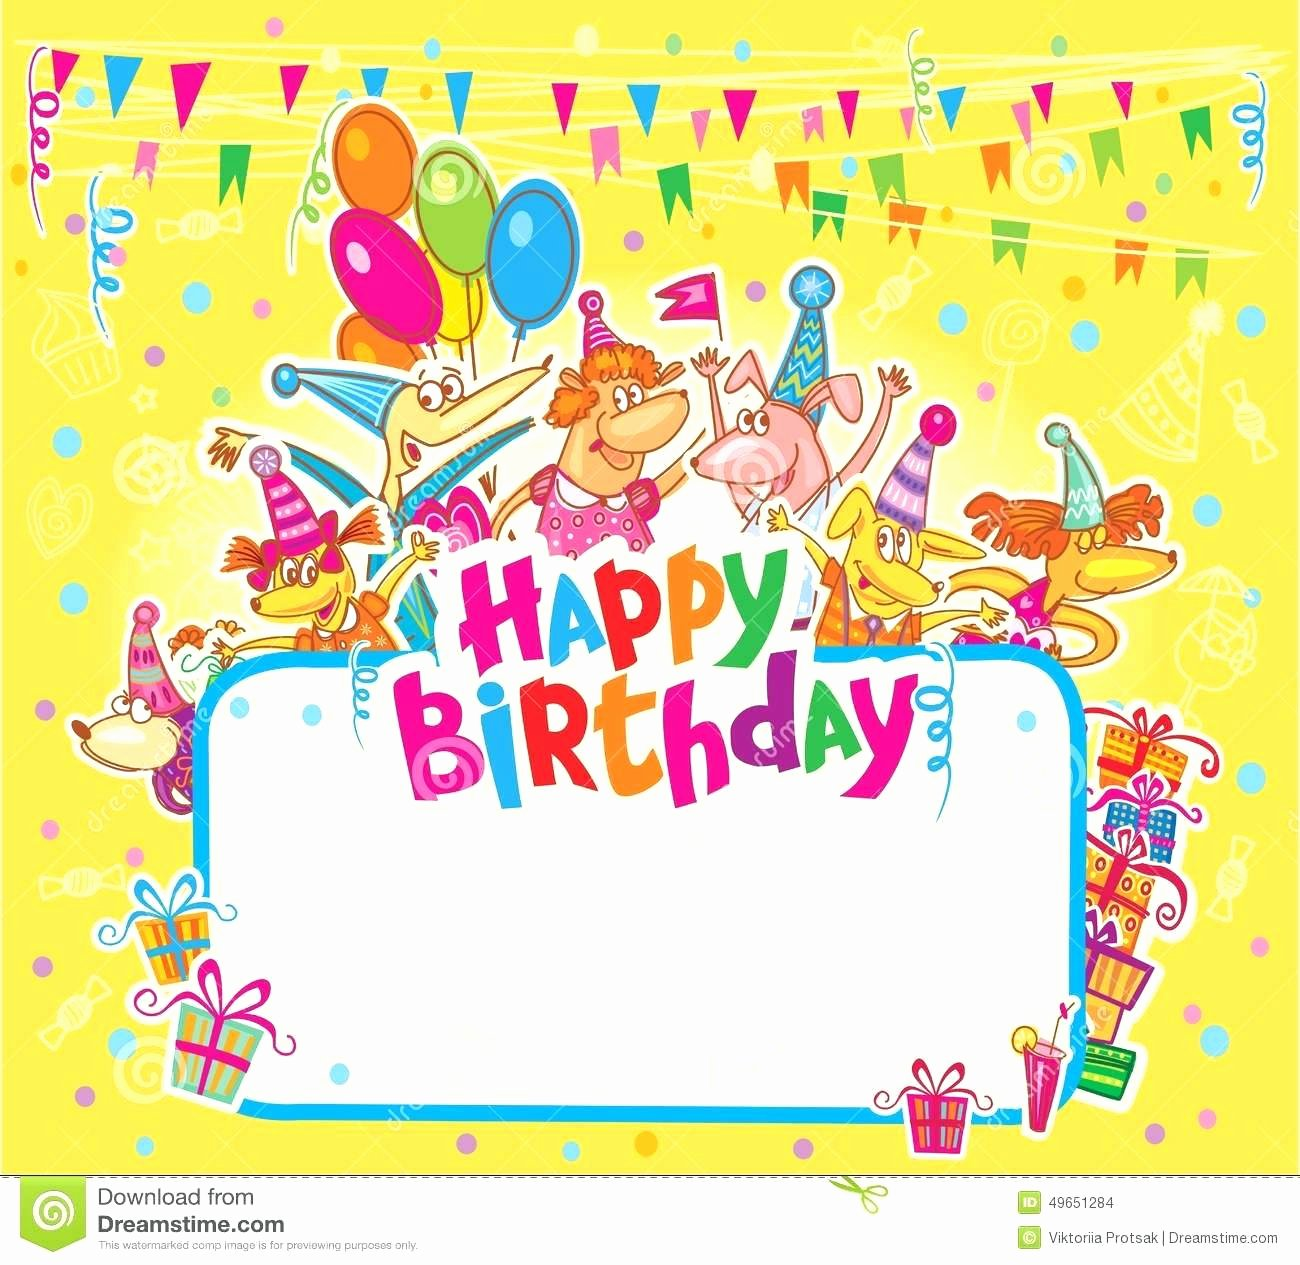 Microsoft Word Birthday Card Template Fresh Template Happy Birthday Card Template Word